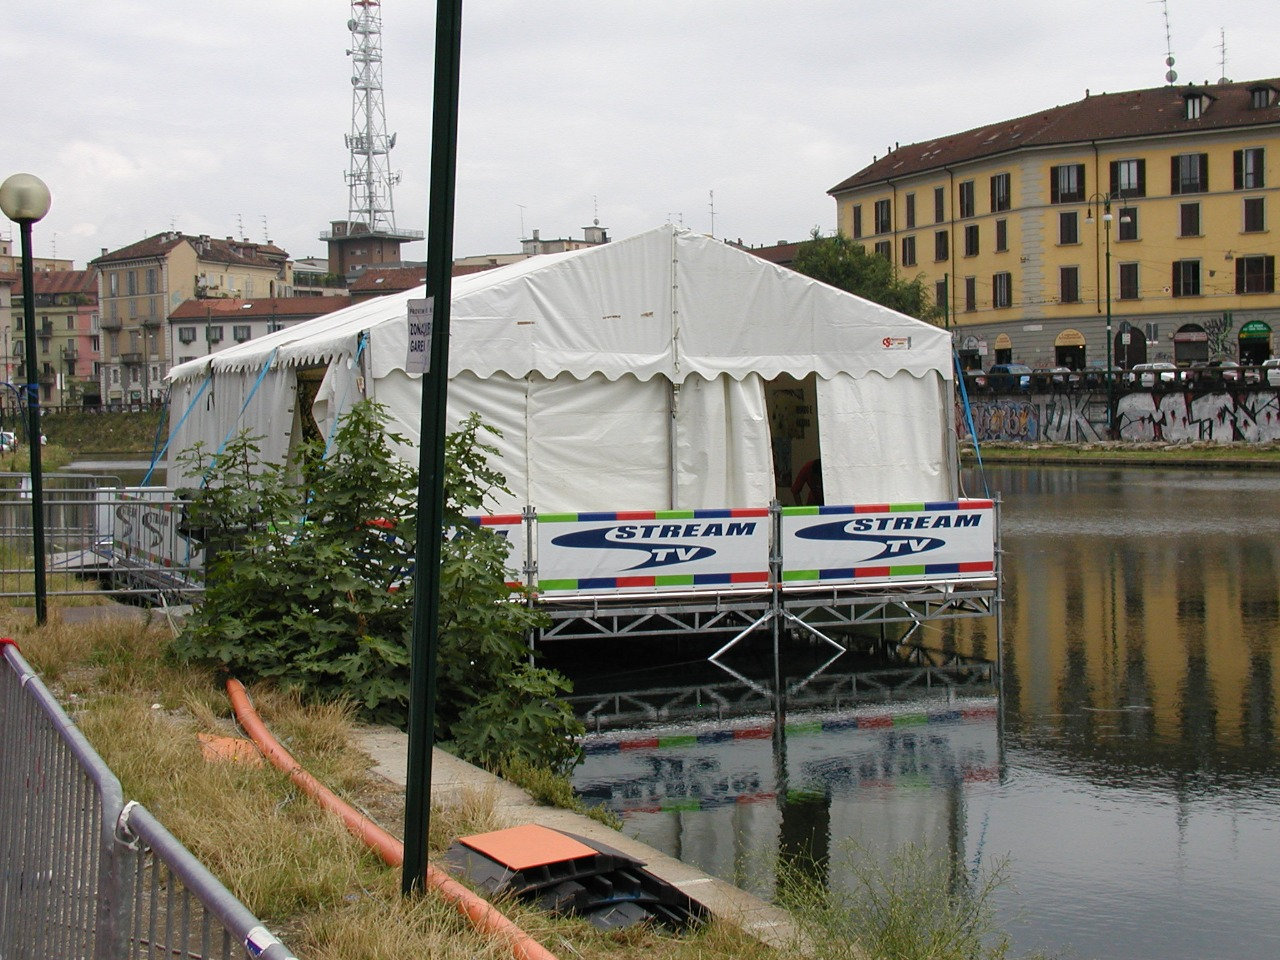 Gallery foto n.2 Stage - Concert on the Naviglio